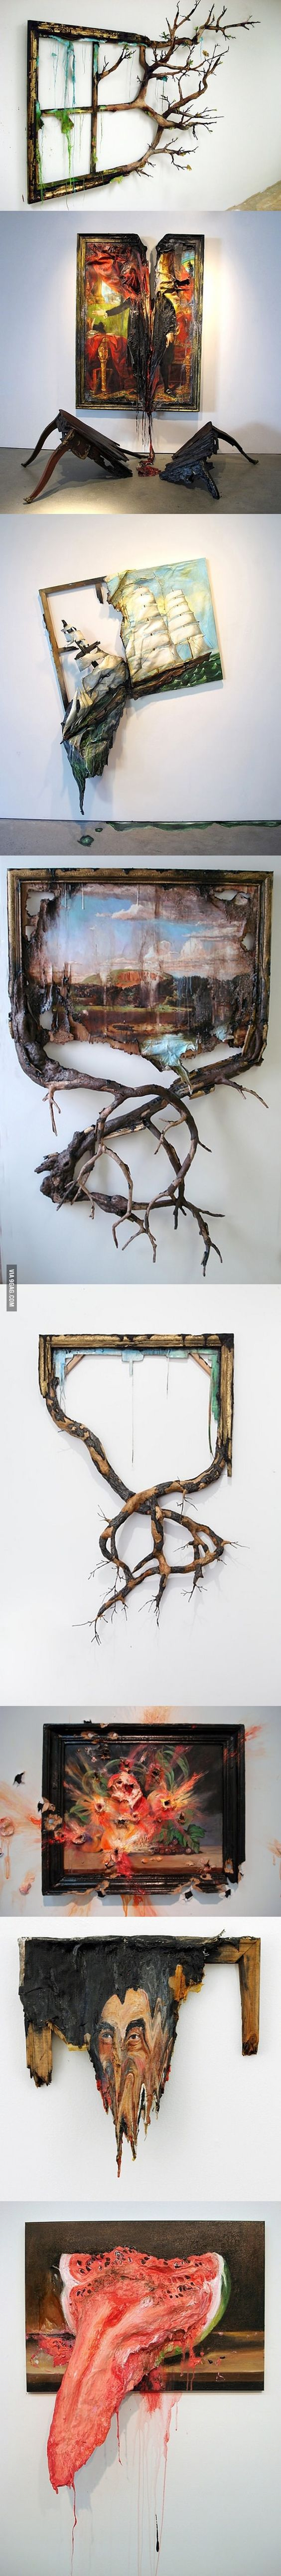 "Valerie Hegarty - ""Decaying"" Paintings"